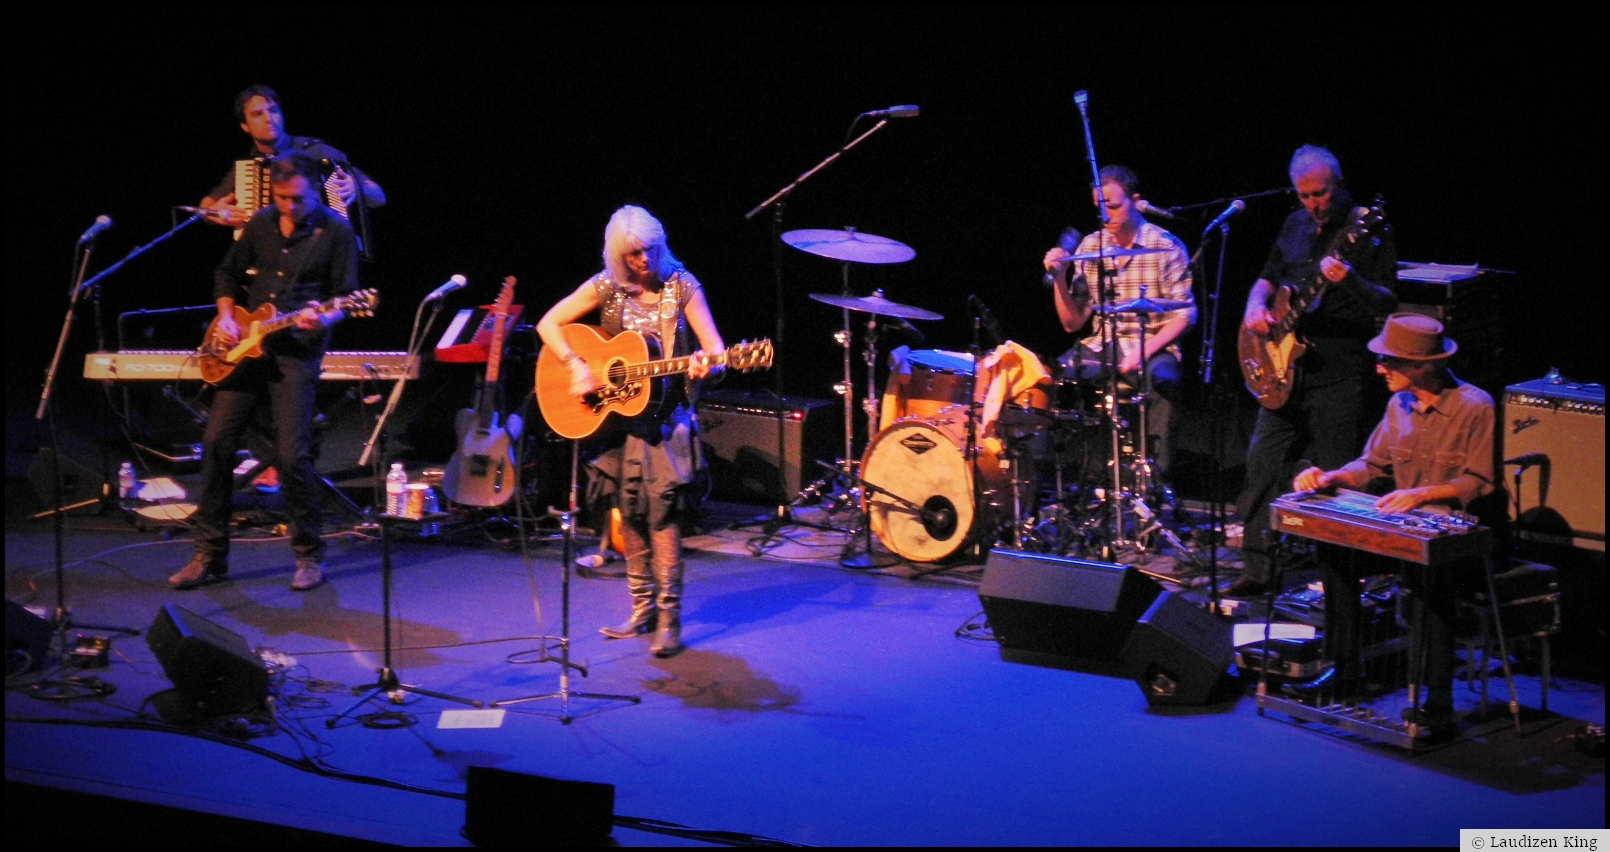 Emmylou Harris at the Gallo Center in Modesto